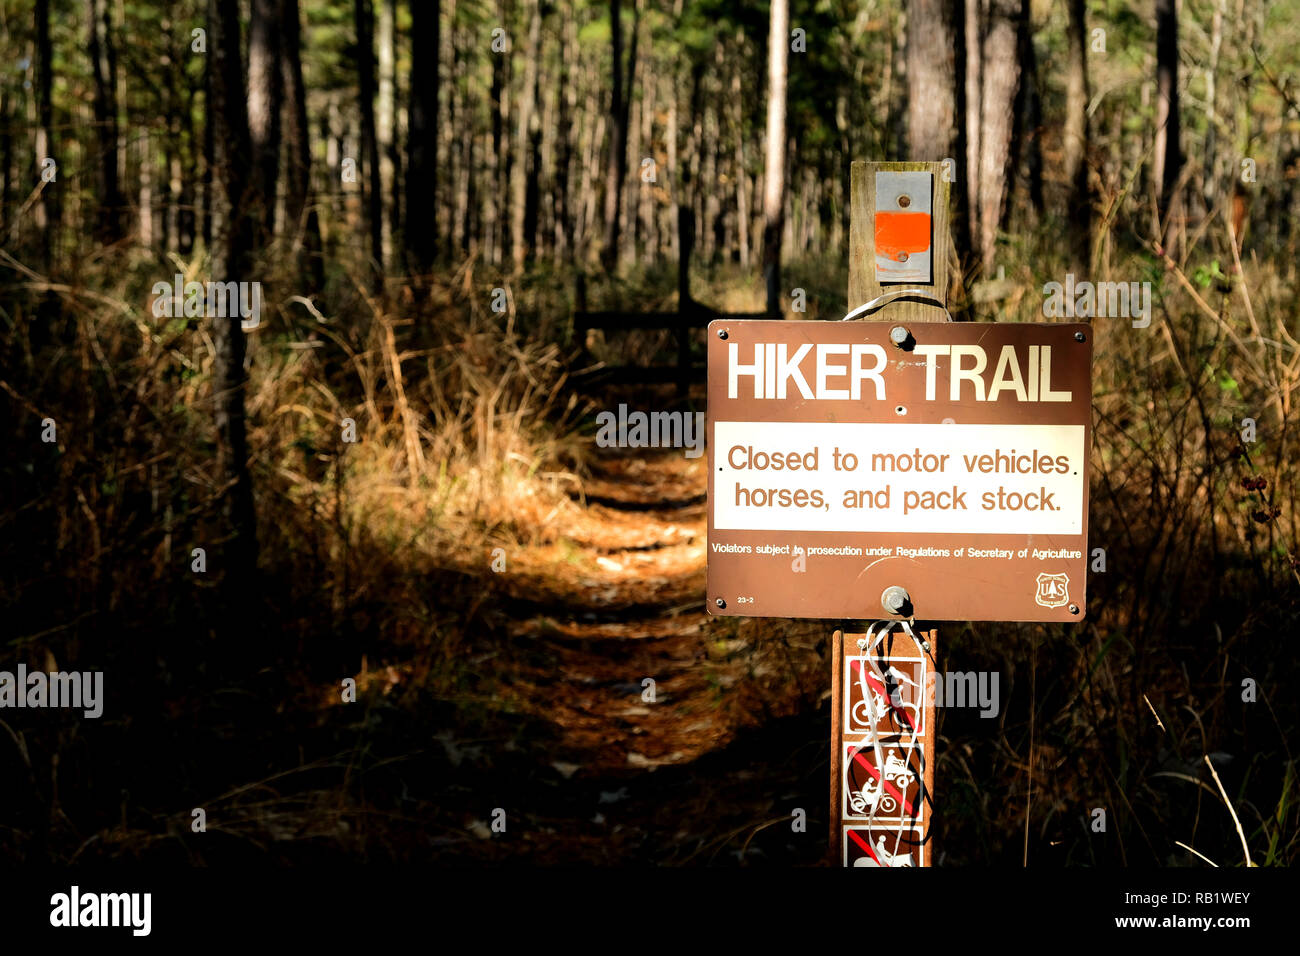 Hiker Trail sign at the Sam Houston National Forest in Texas prohibiting motor vehicles, horses, and pack stock from using the hiking trail. - Stock Image